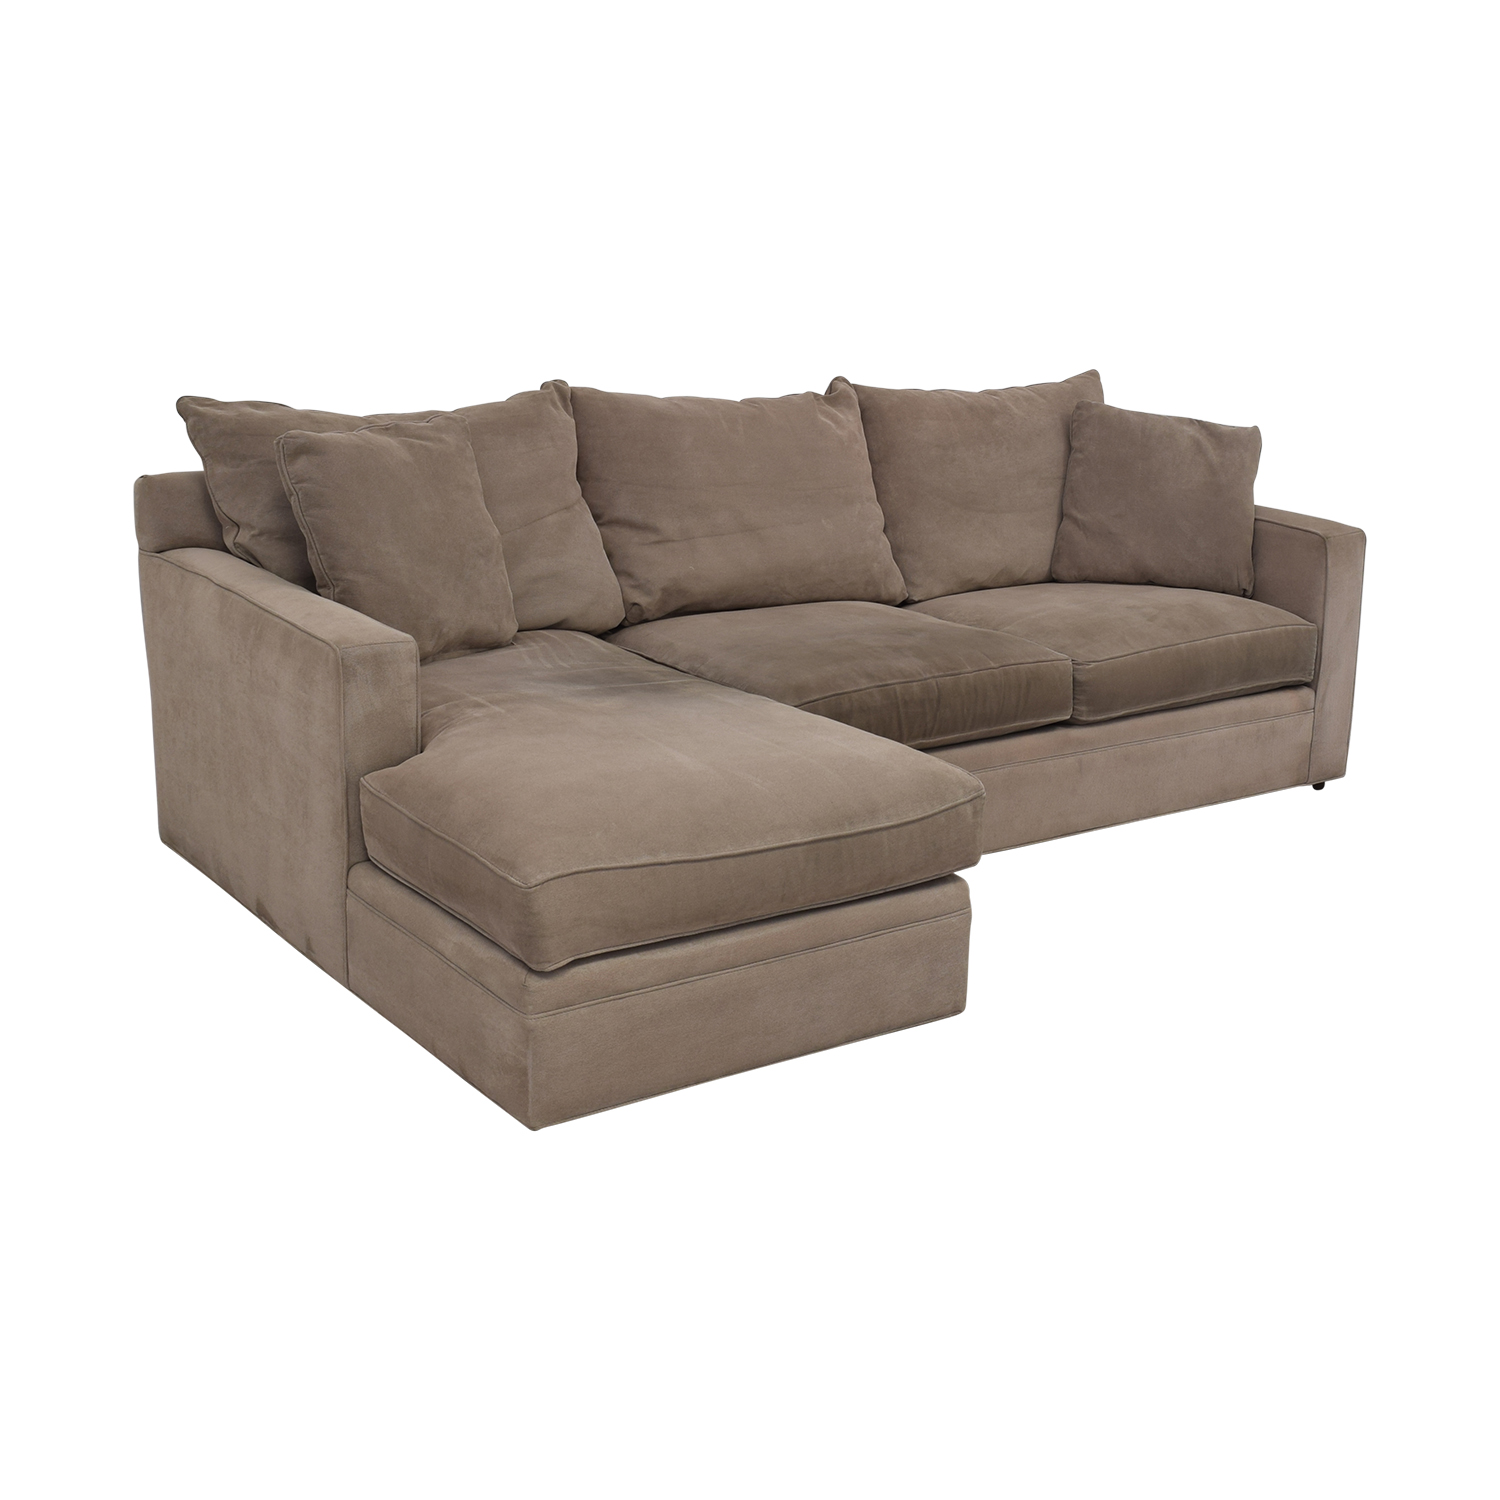 Room & Board Orson Sectional Couch Room & Board